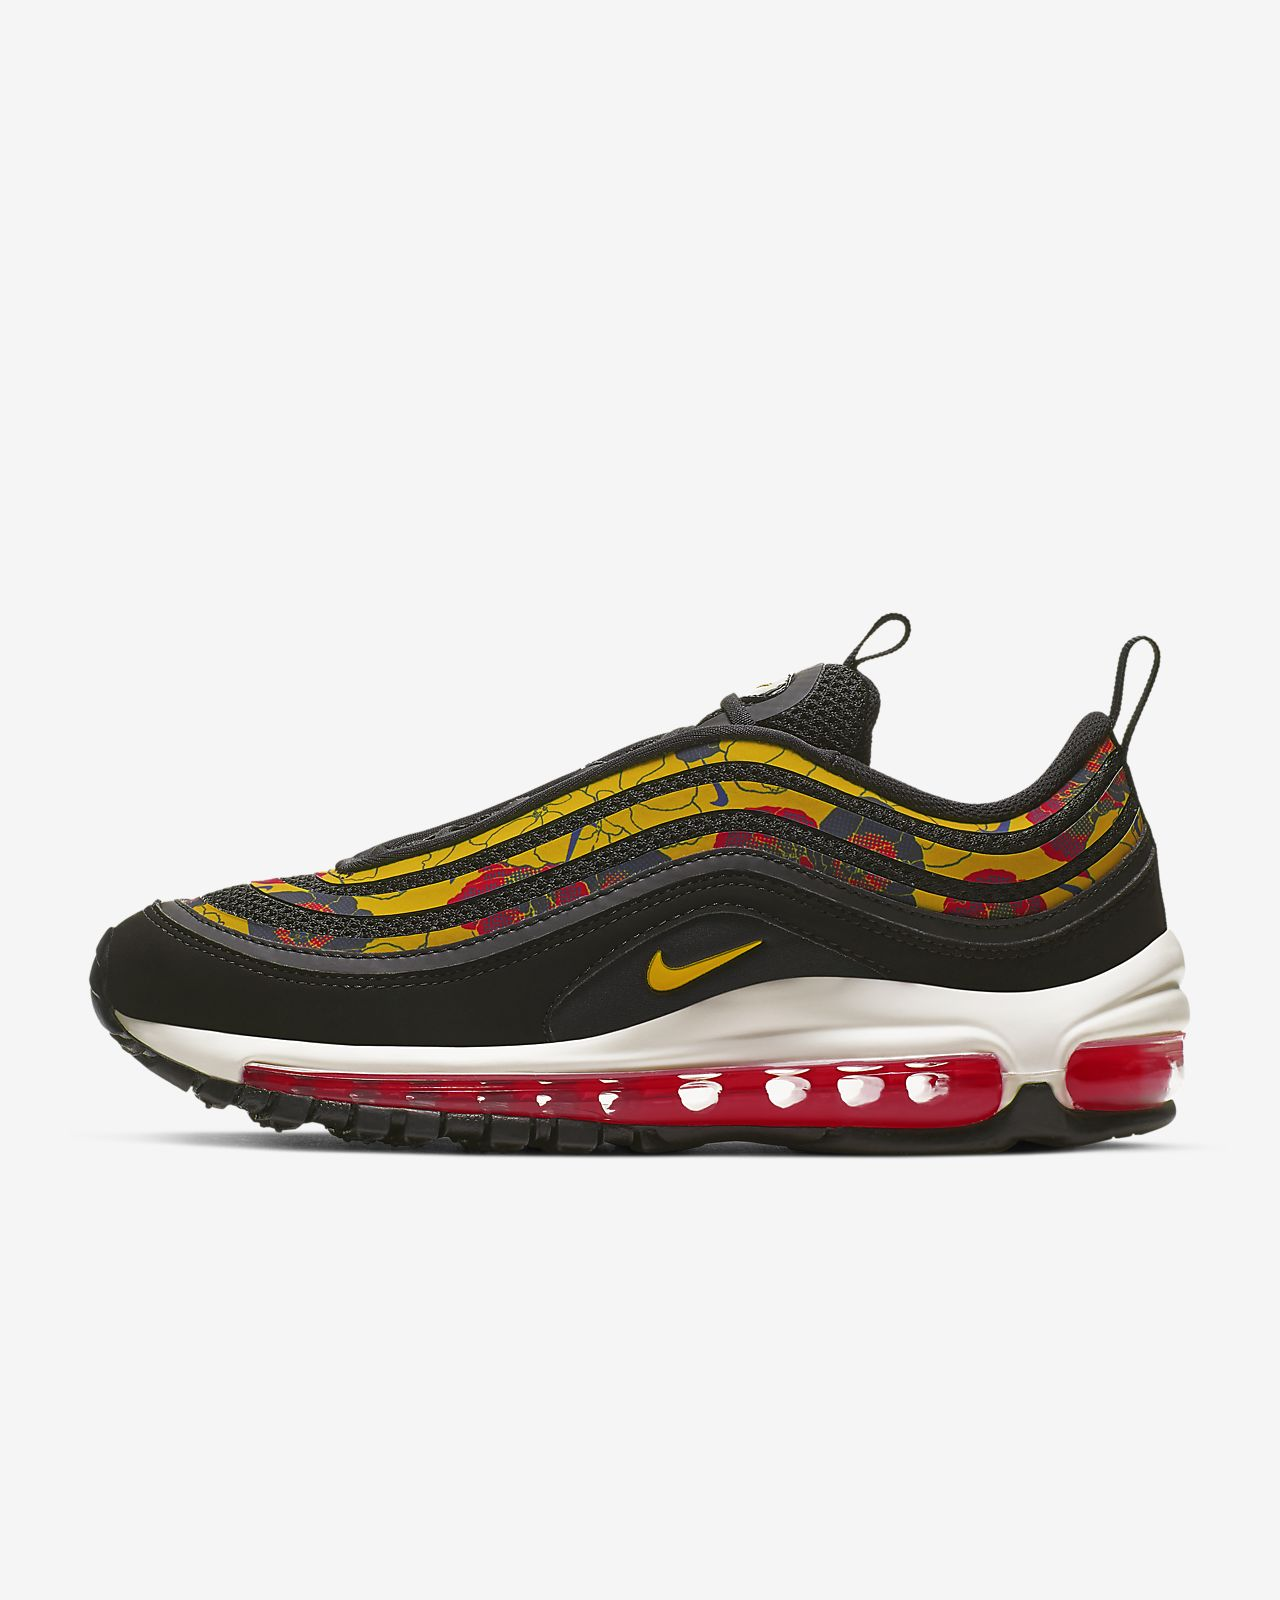 nike w air max 97 chaussures de fitness femme